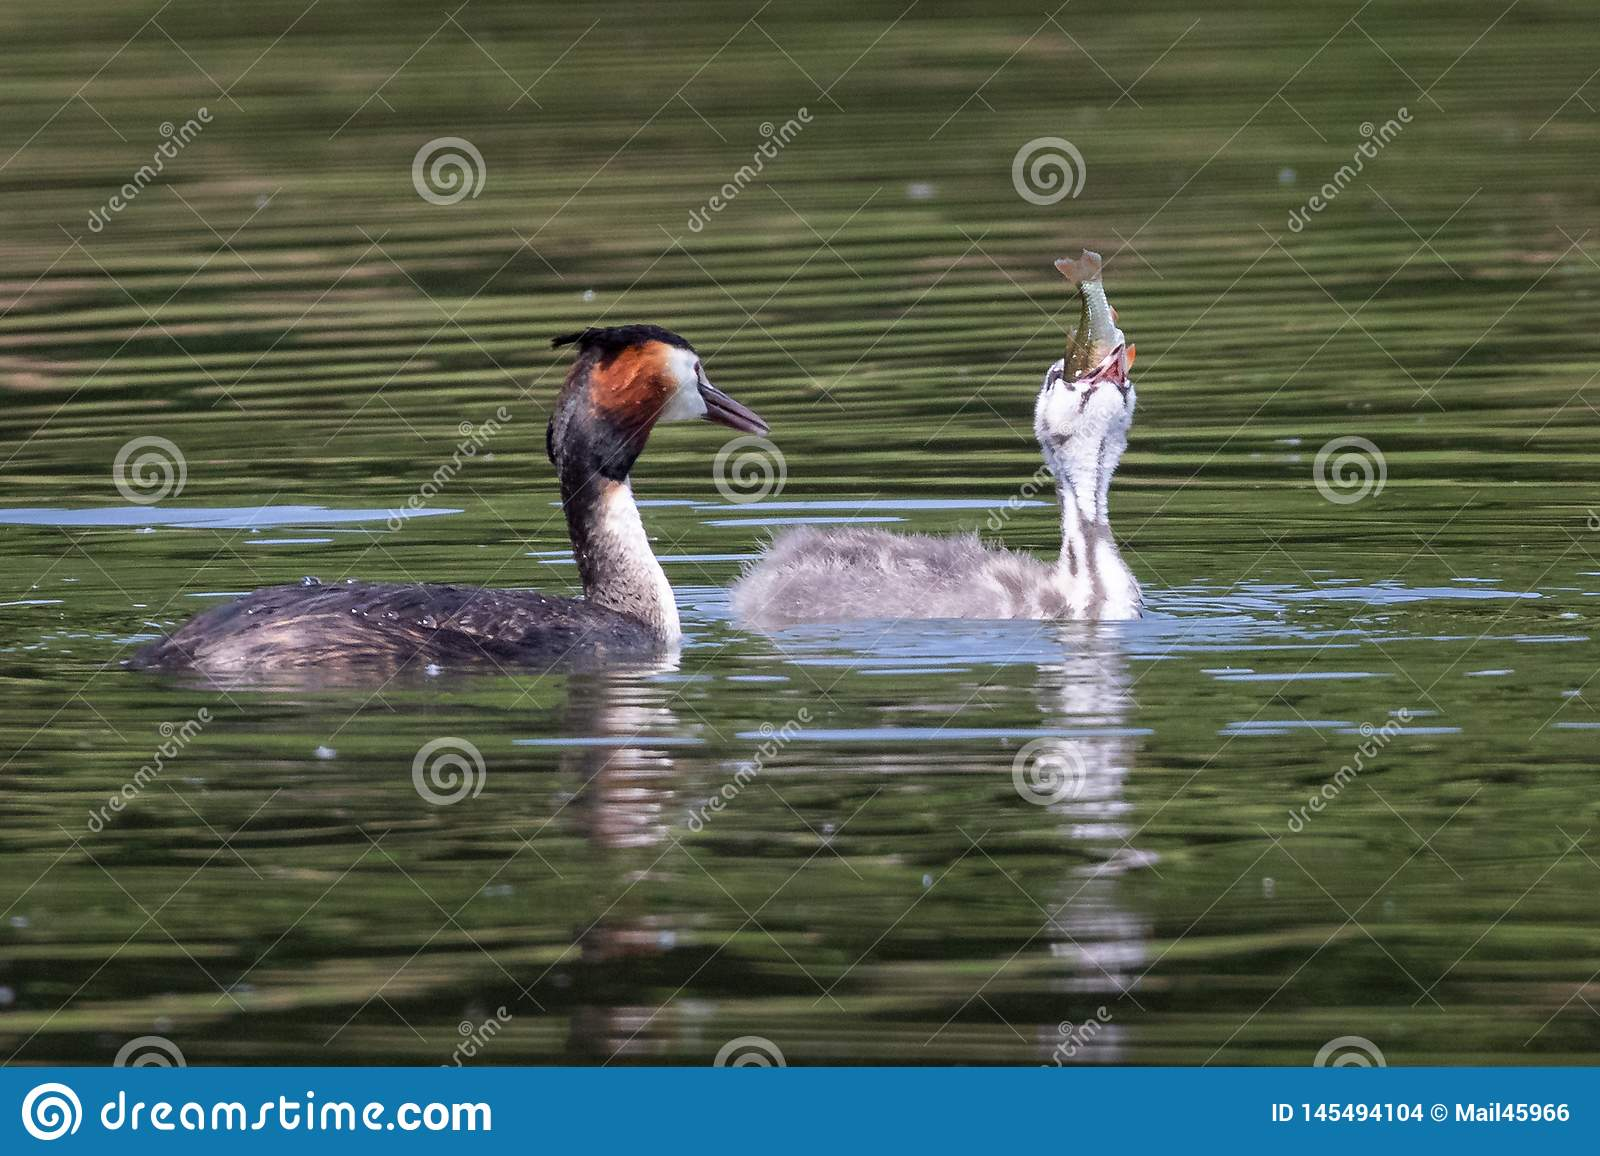 Great Crested Grebe chick eating a fish